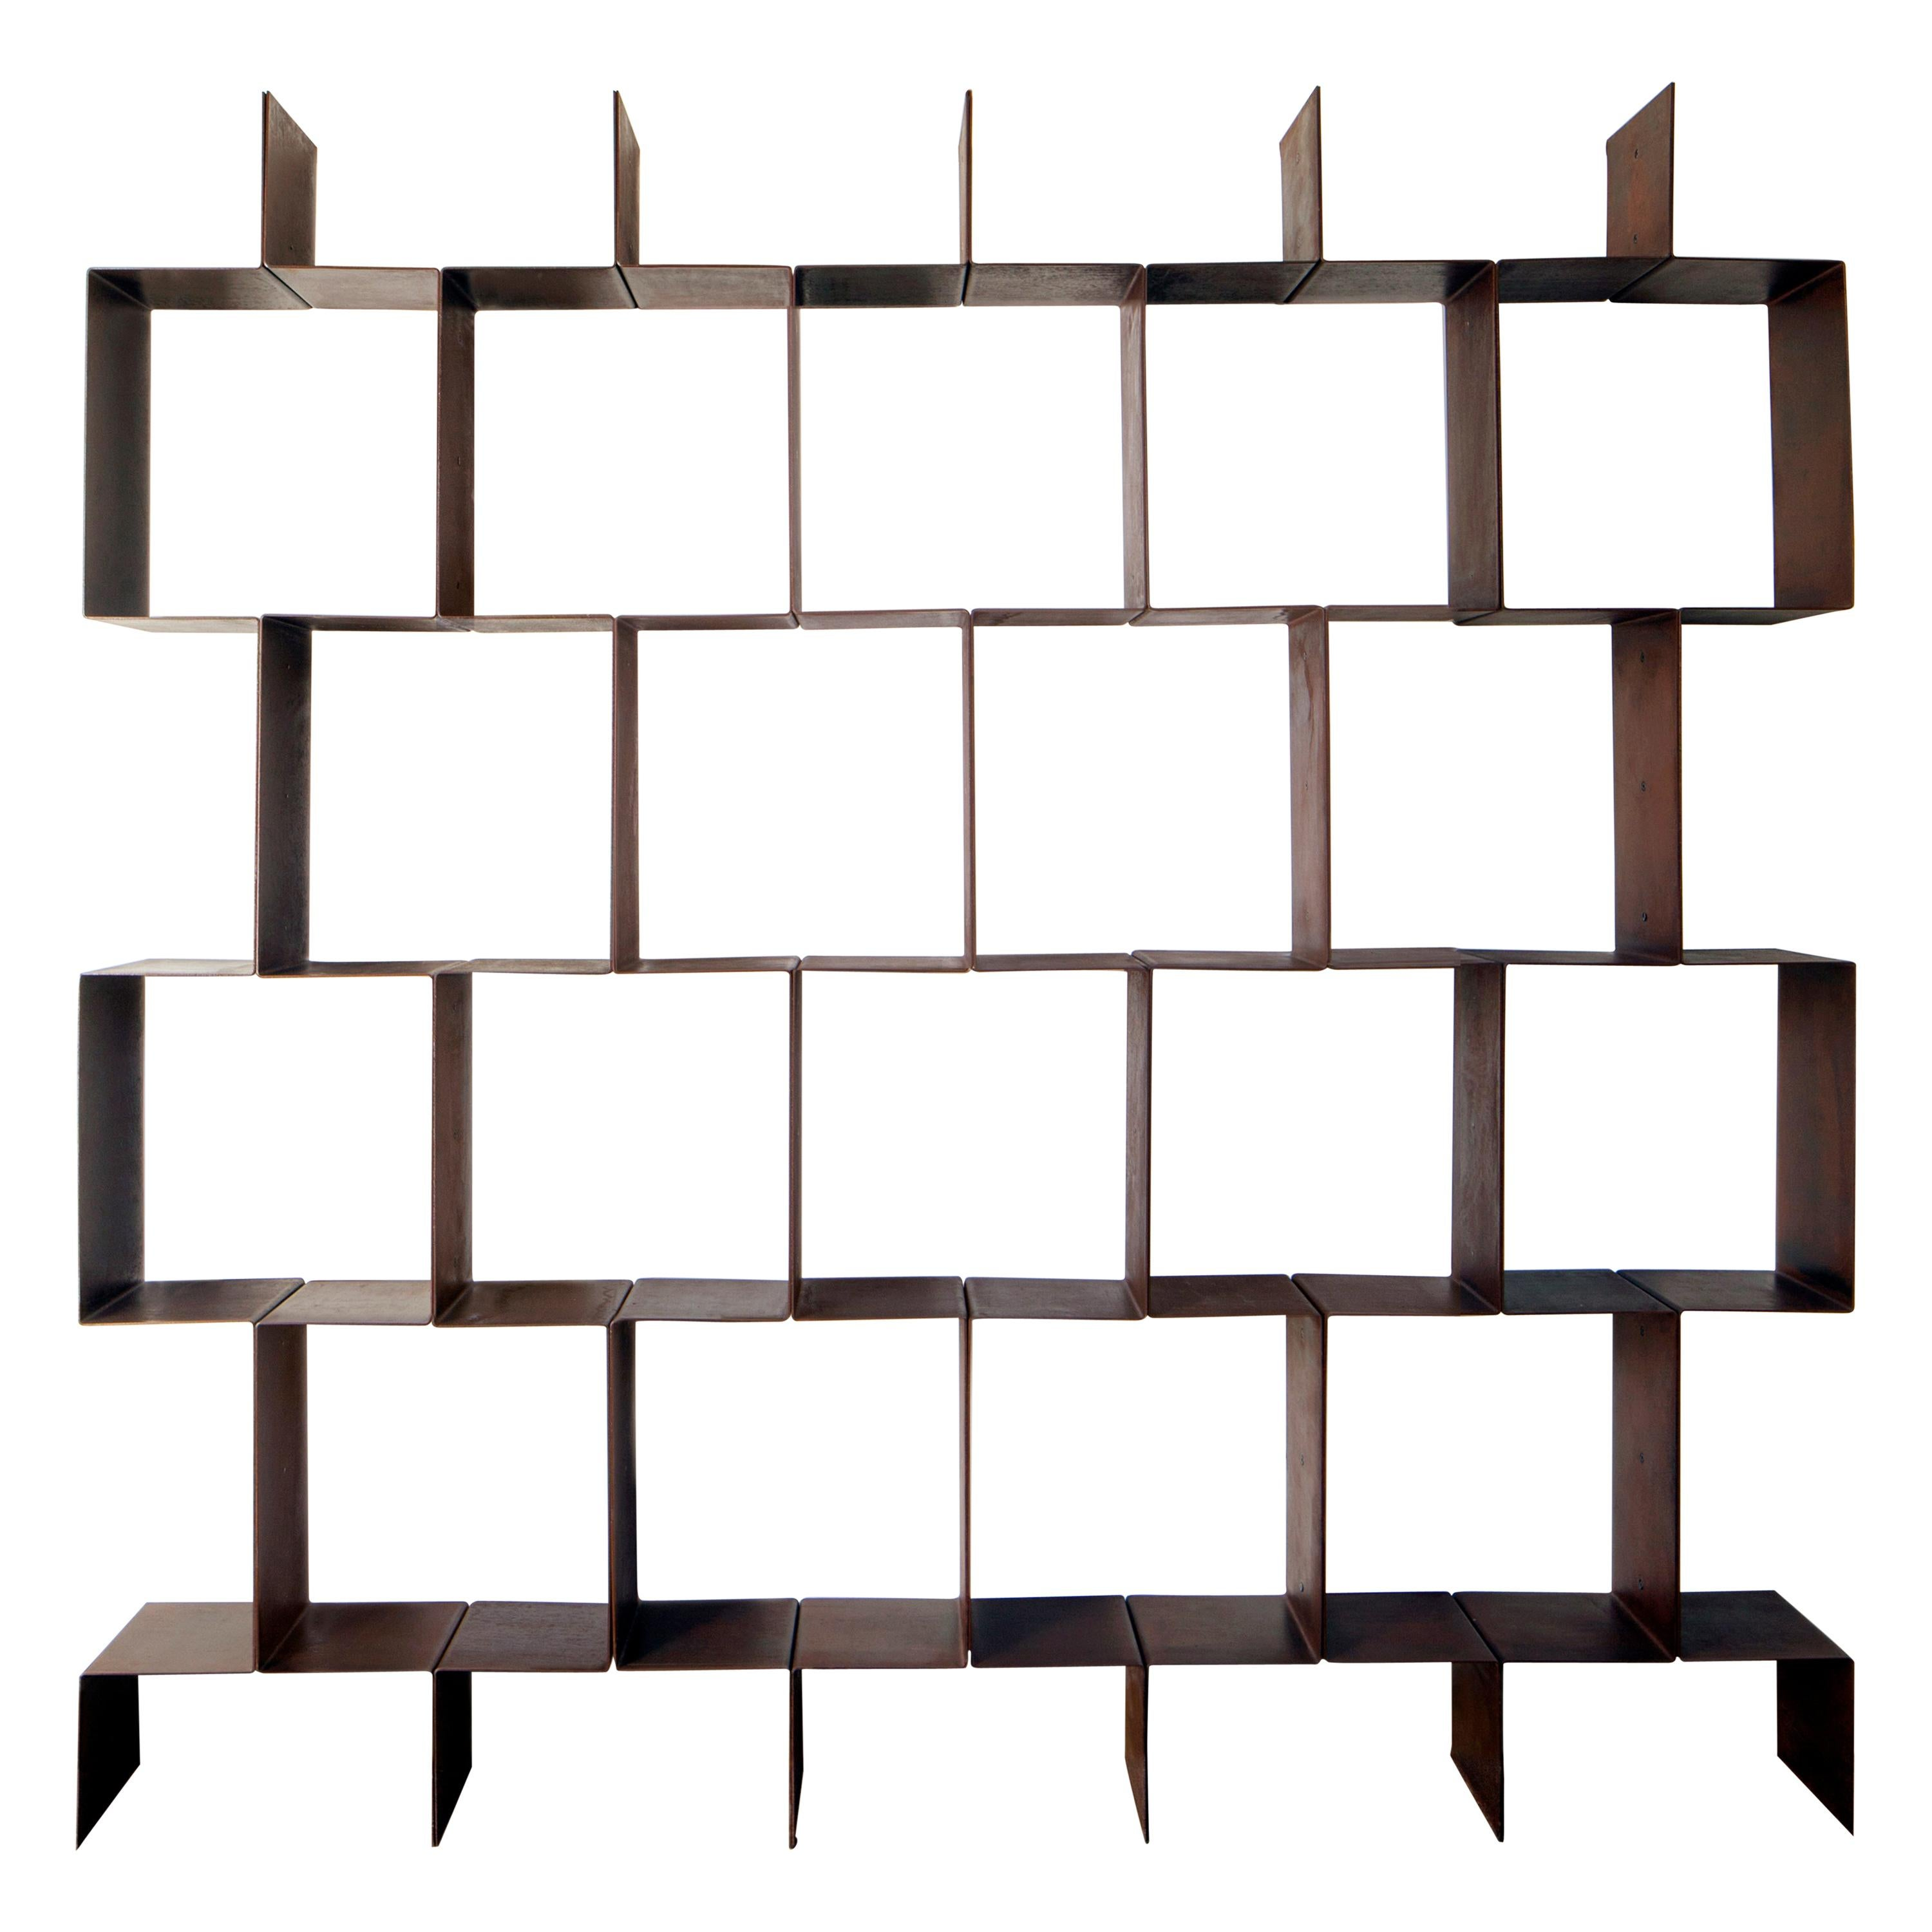 Luxury Modular Bookshelves Seventies in COR-Ten Steel, Made in Italy